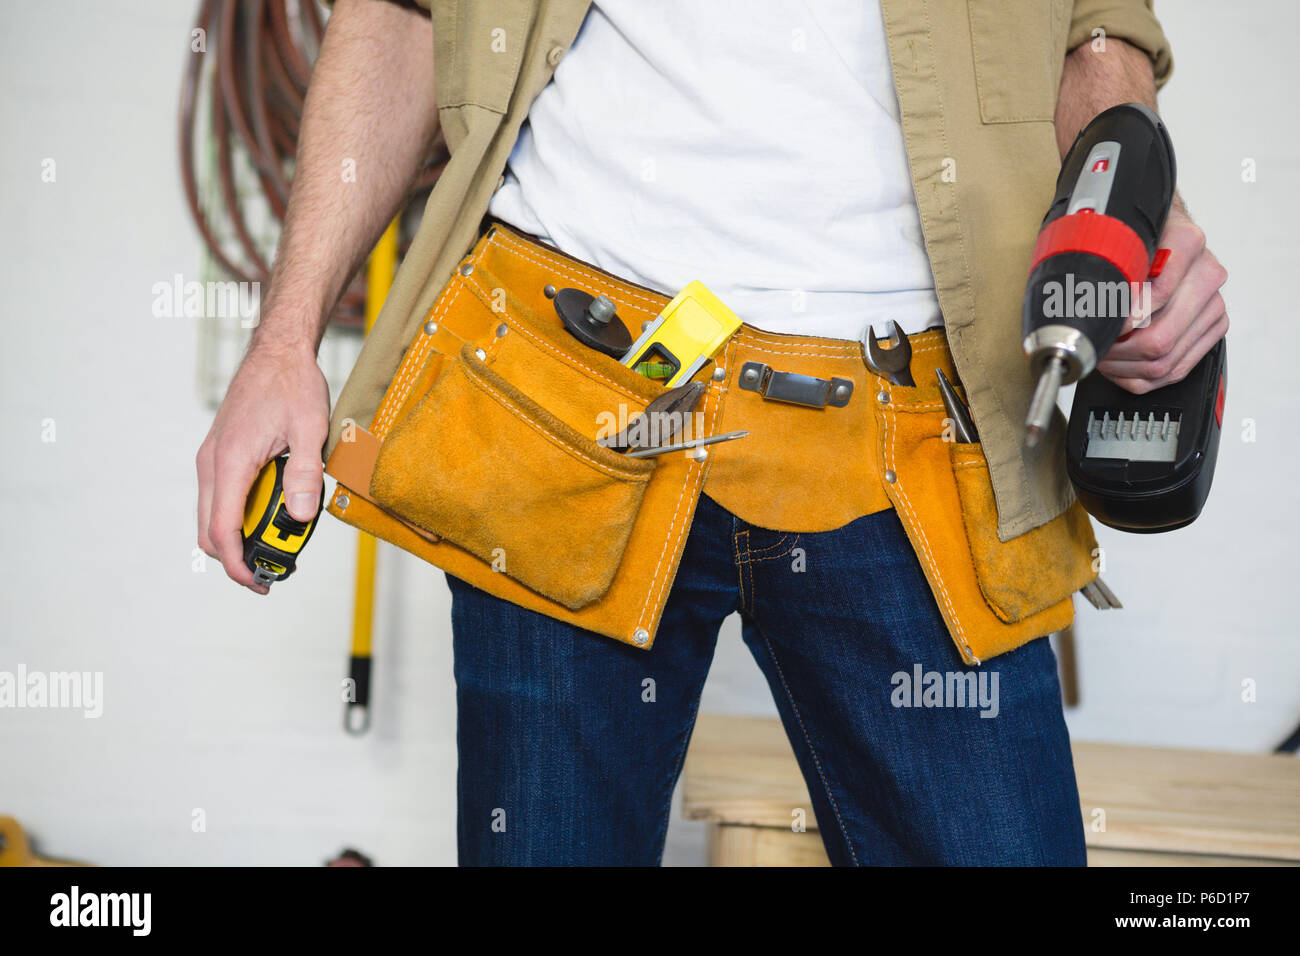 Male carpenter with tool belt in workshop - Stock Image